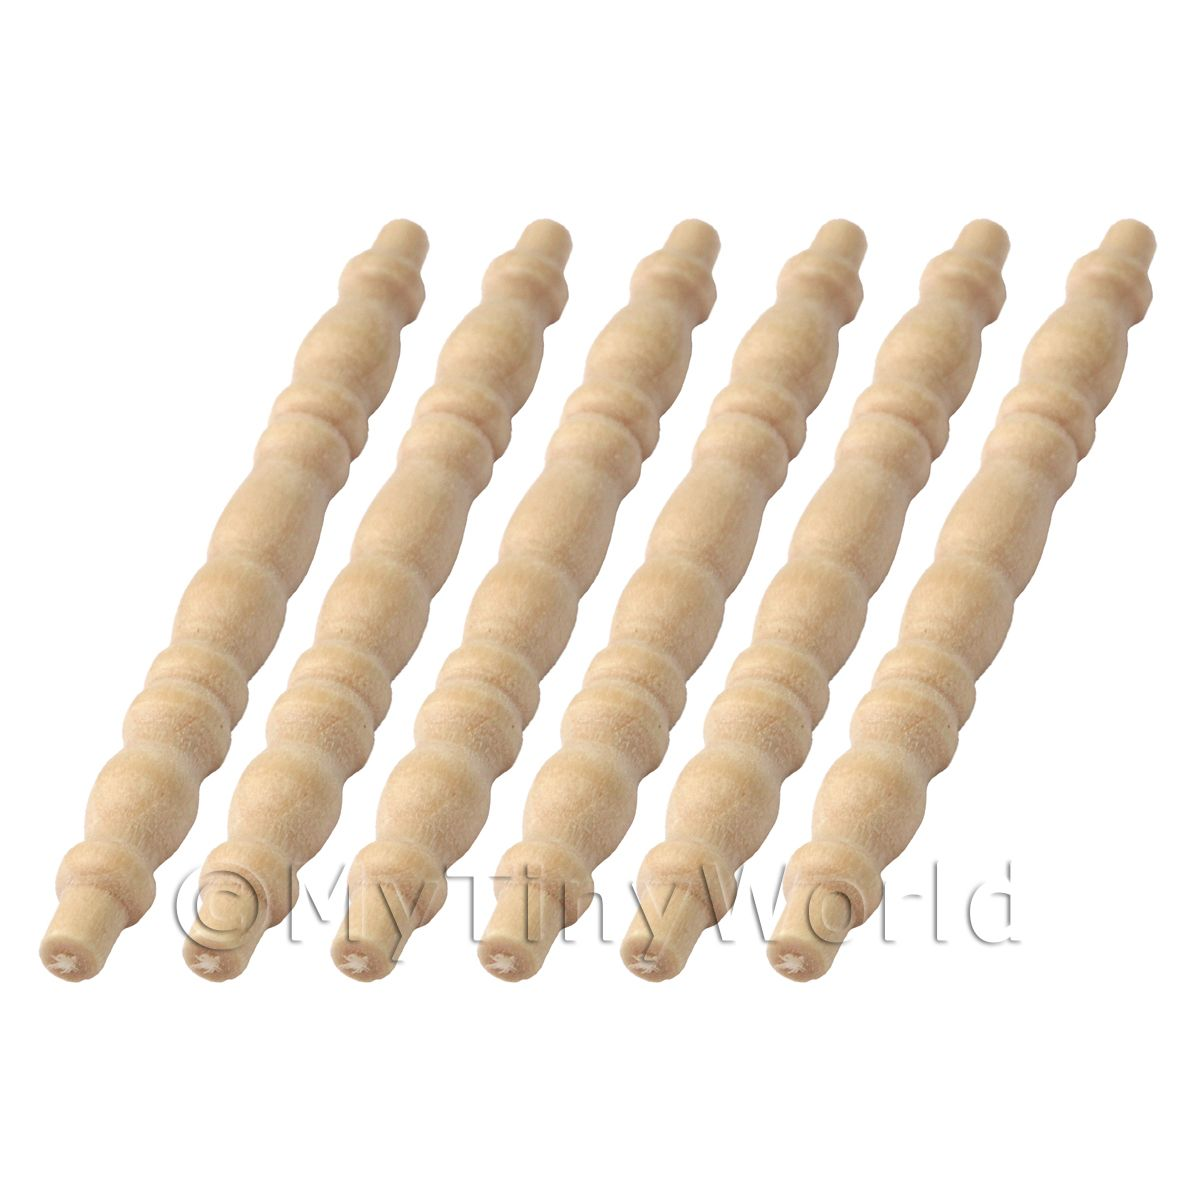 6 x Dolls House Miniature Rounded Wood Spindles (Style 8)